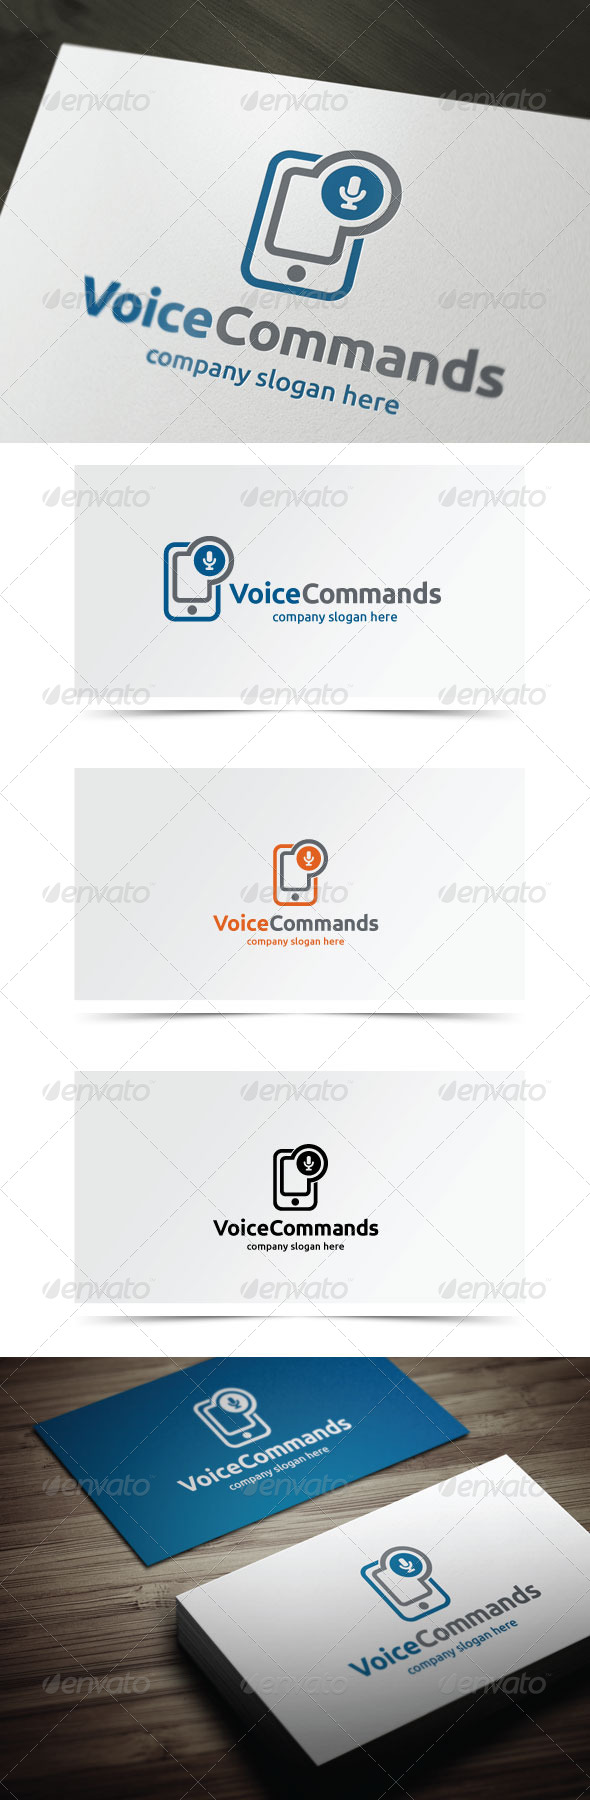 Voice Commands - Symbols Logo Templates